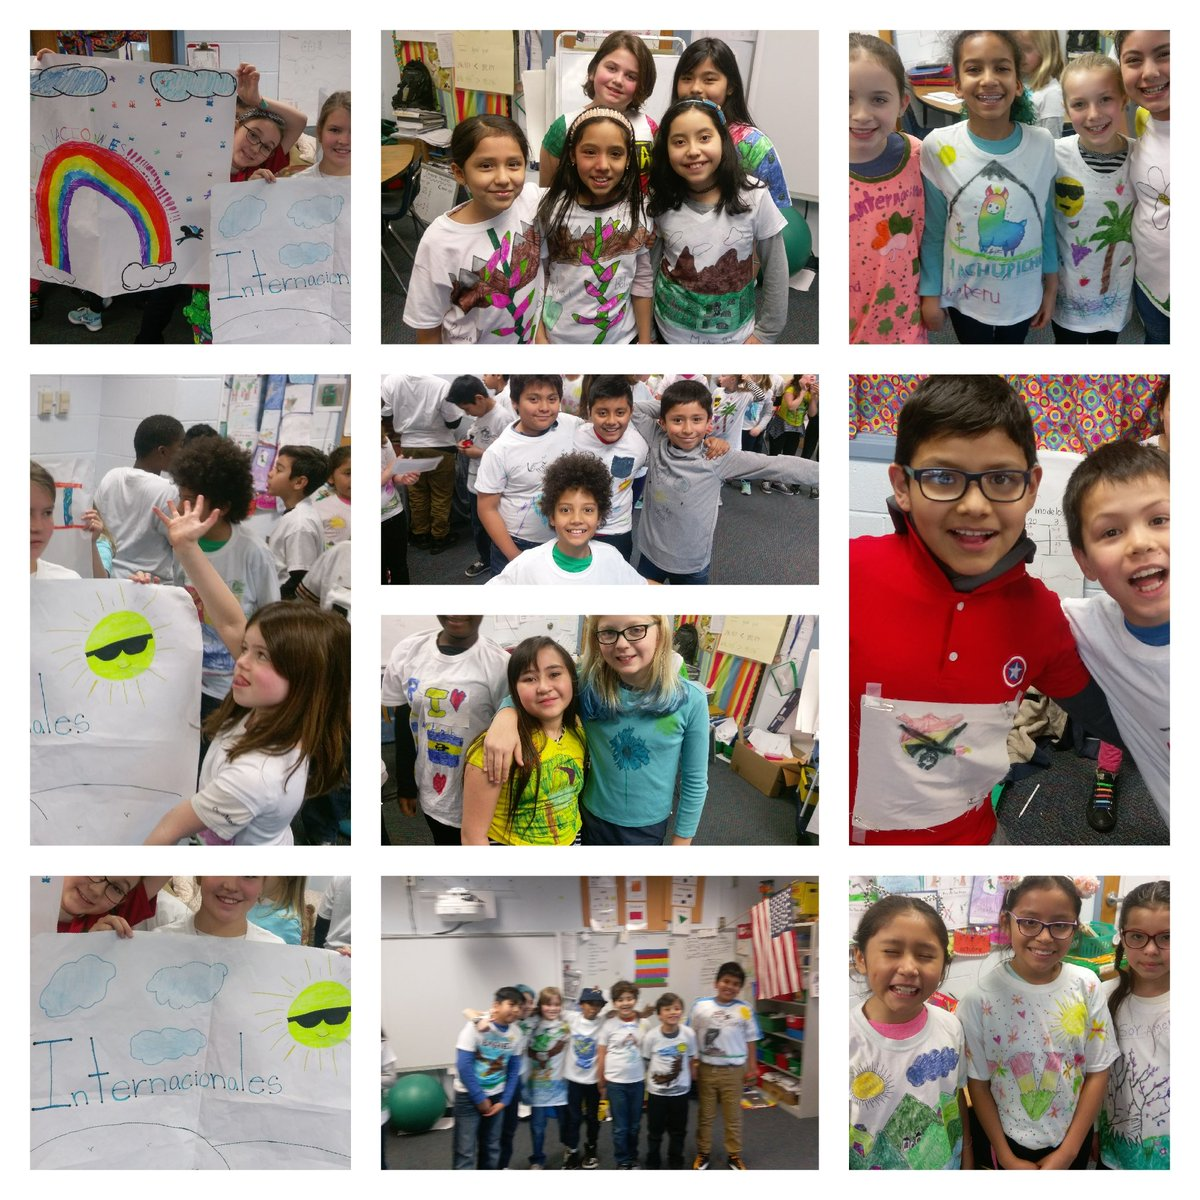 RT <a target='_blank' href='http://twitter.com/Rosielivenlearn'>@Rosielivenlearn</a>: Congratulations! ¡Felicidades! Día del Idioma presentation <a target='_blank' href='http://search.twitter.com/search?q=CIS_APS'><a target='_blank' href='https://twitter.com/hashtag/CIS_APS?src=hash'>#CIS_APS</a></a> <a target='_blank' href='https://t.co/5mMaD6LFSE'>https://t.co/5mMaD6LFSE</a>